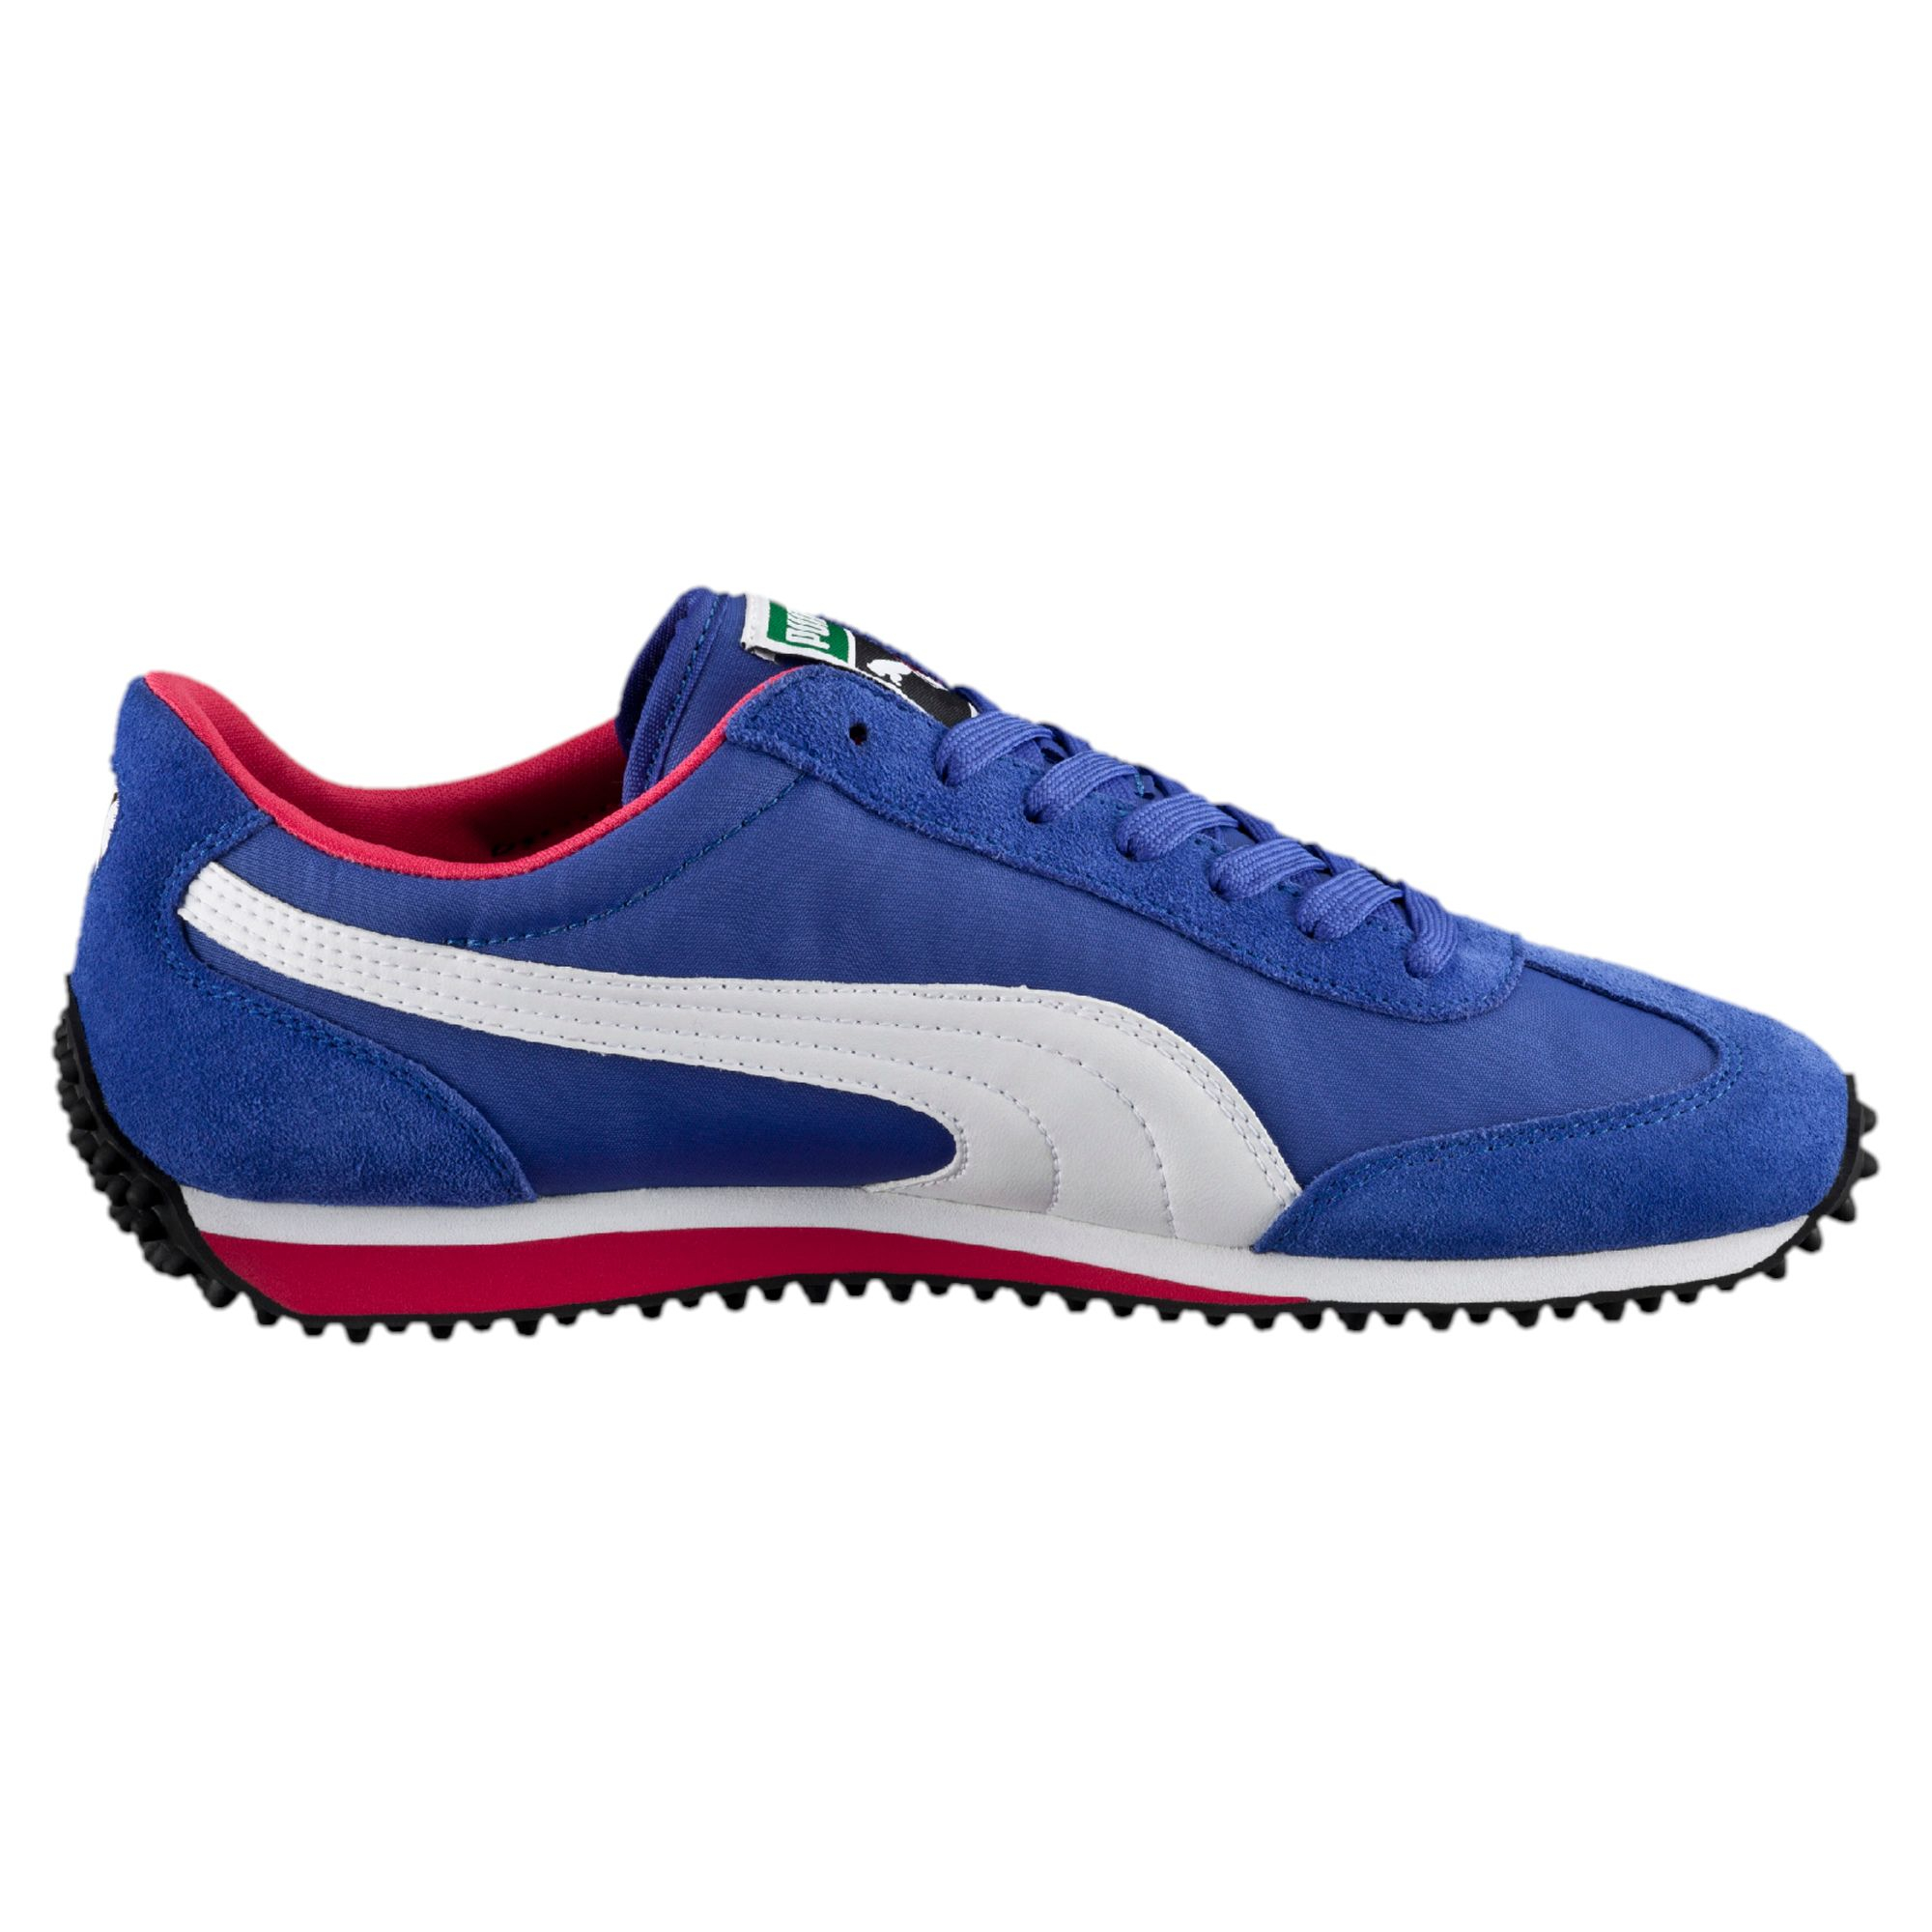 8efb5db3fd3e80 Lyst - PUMA Whirlwind Classic Men s Sneakers in Blue for Men